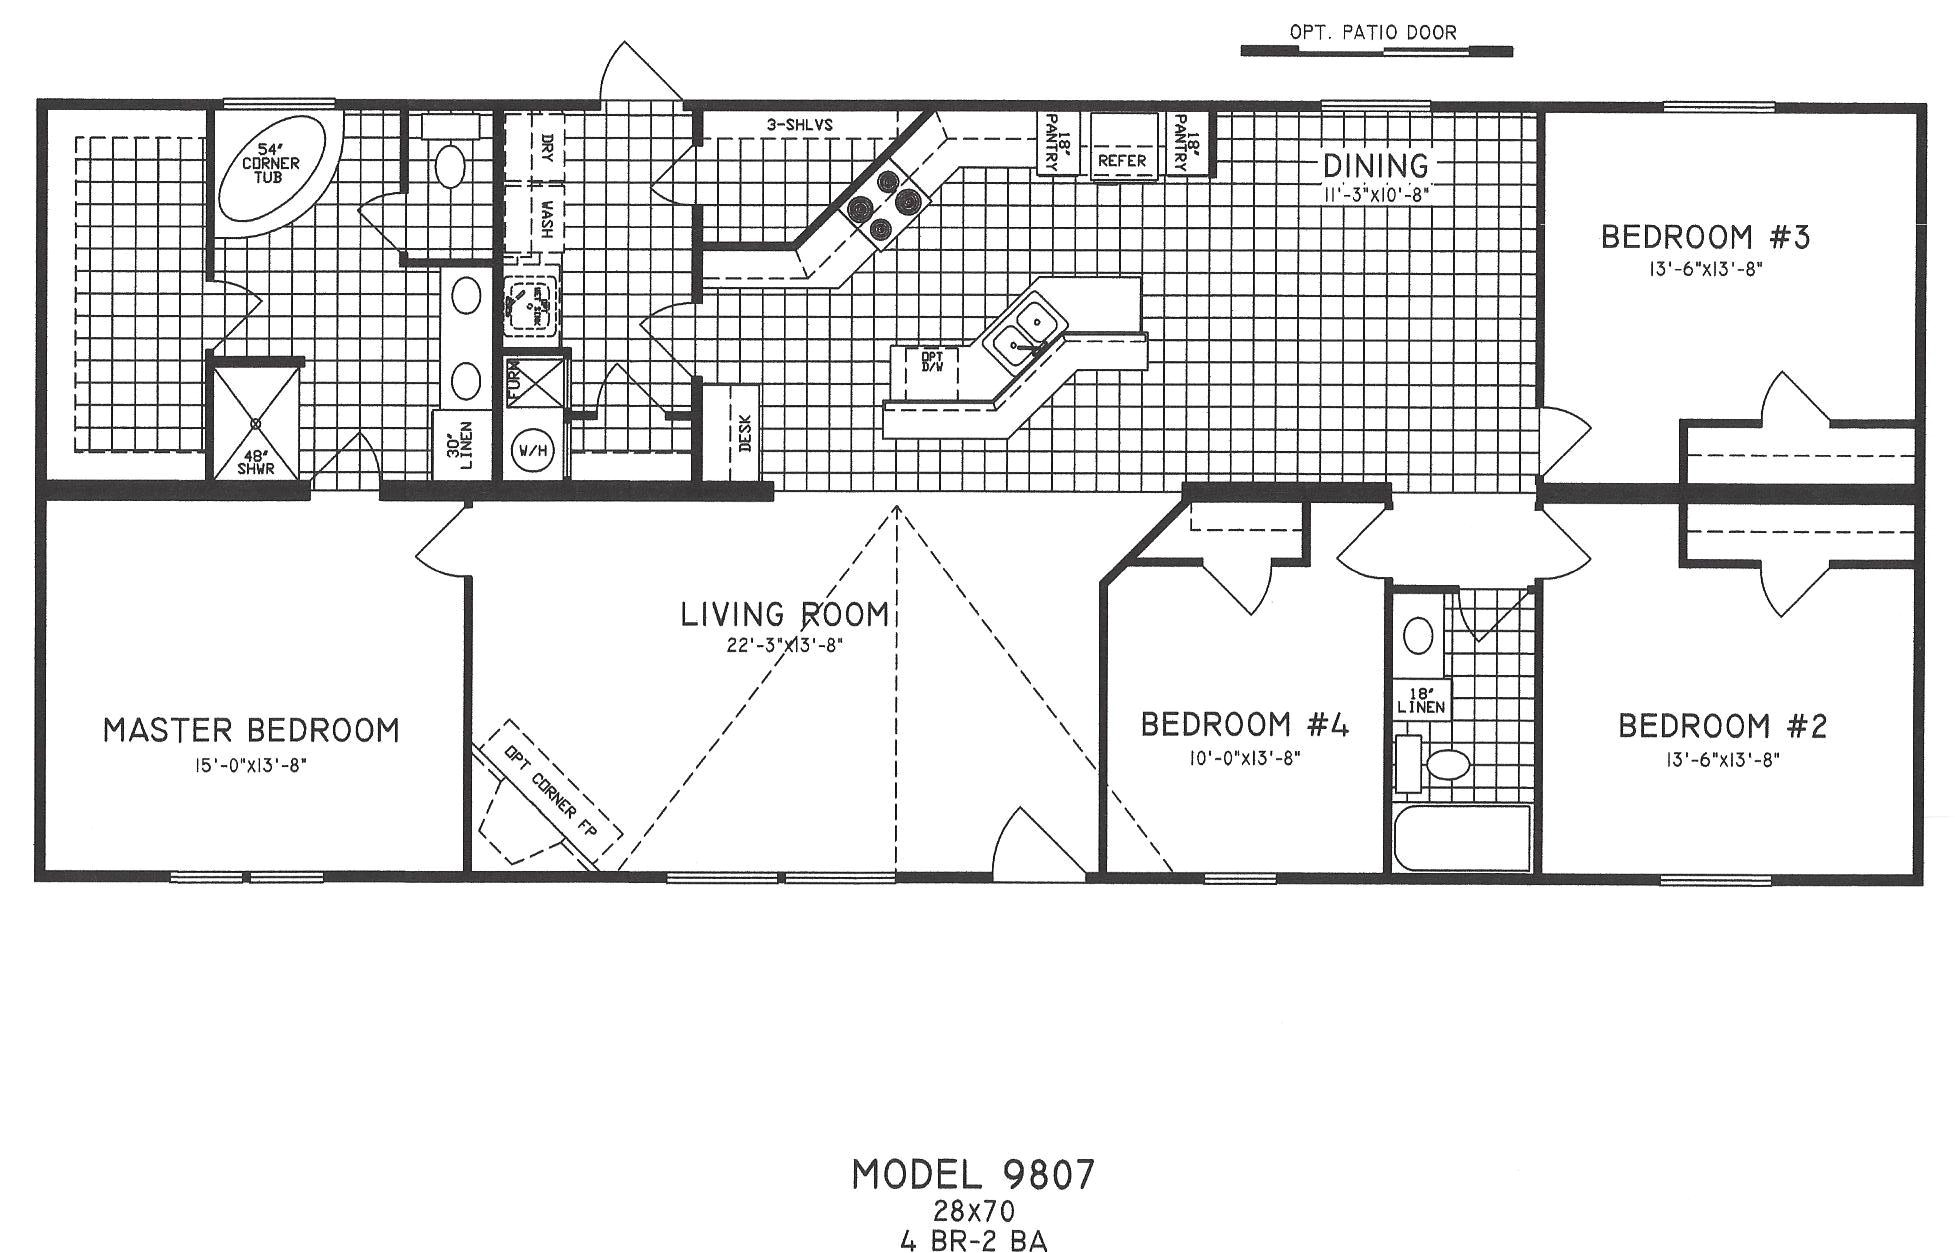 4 bedroom floor plan c 9807